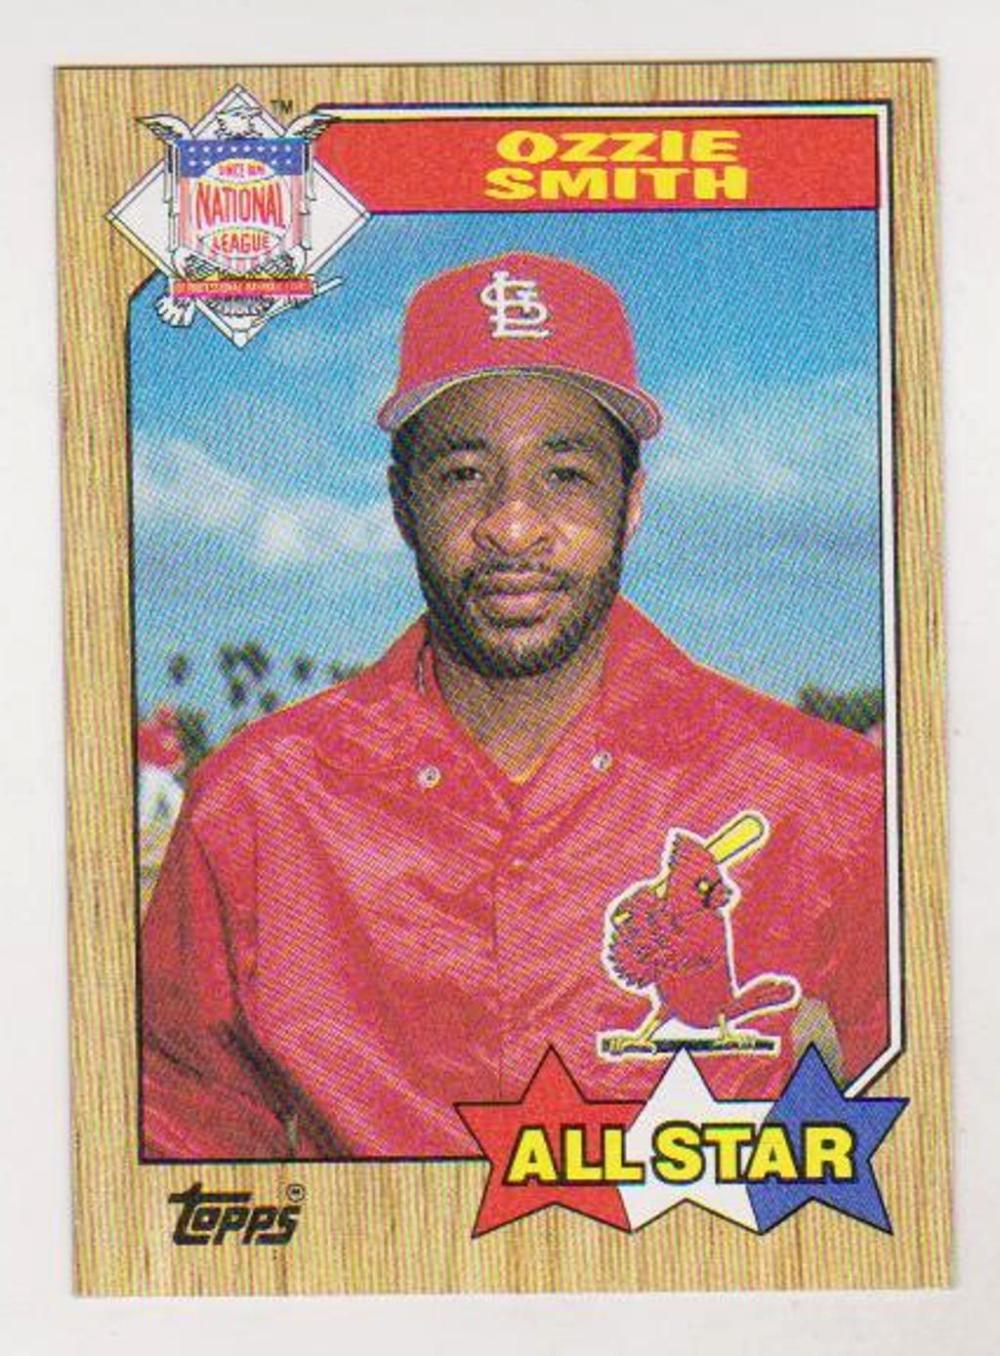 Error 1987 Topps Ozzie Smith Wrong Back Error Card